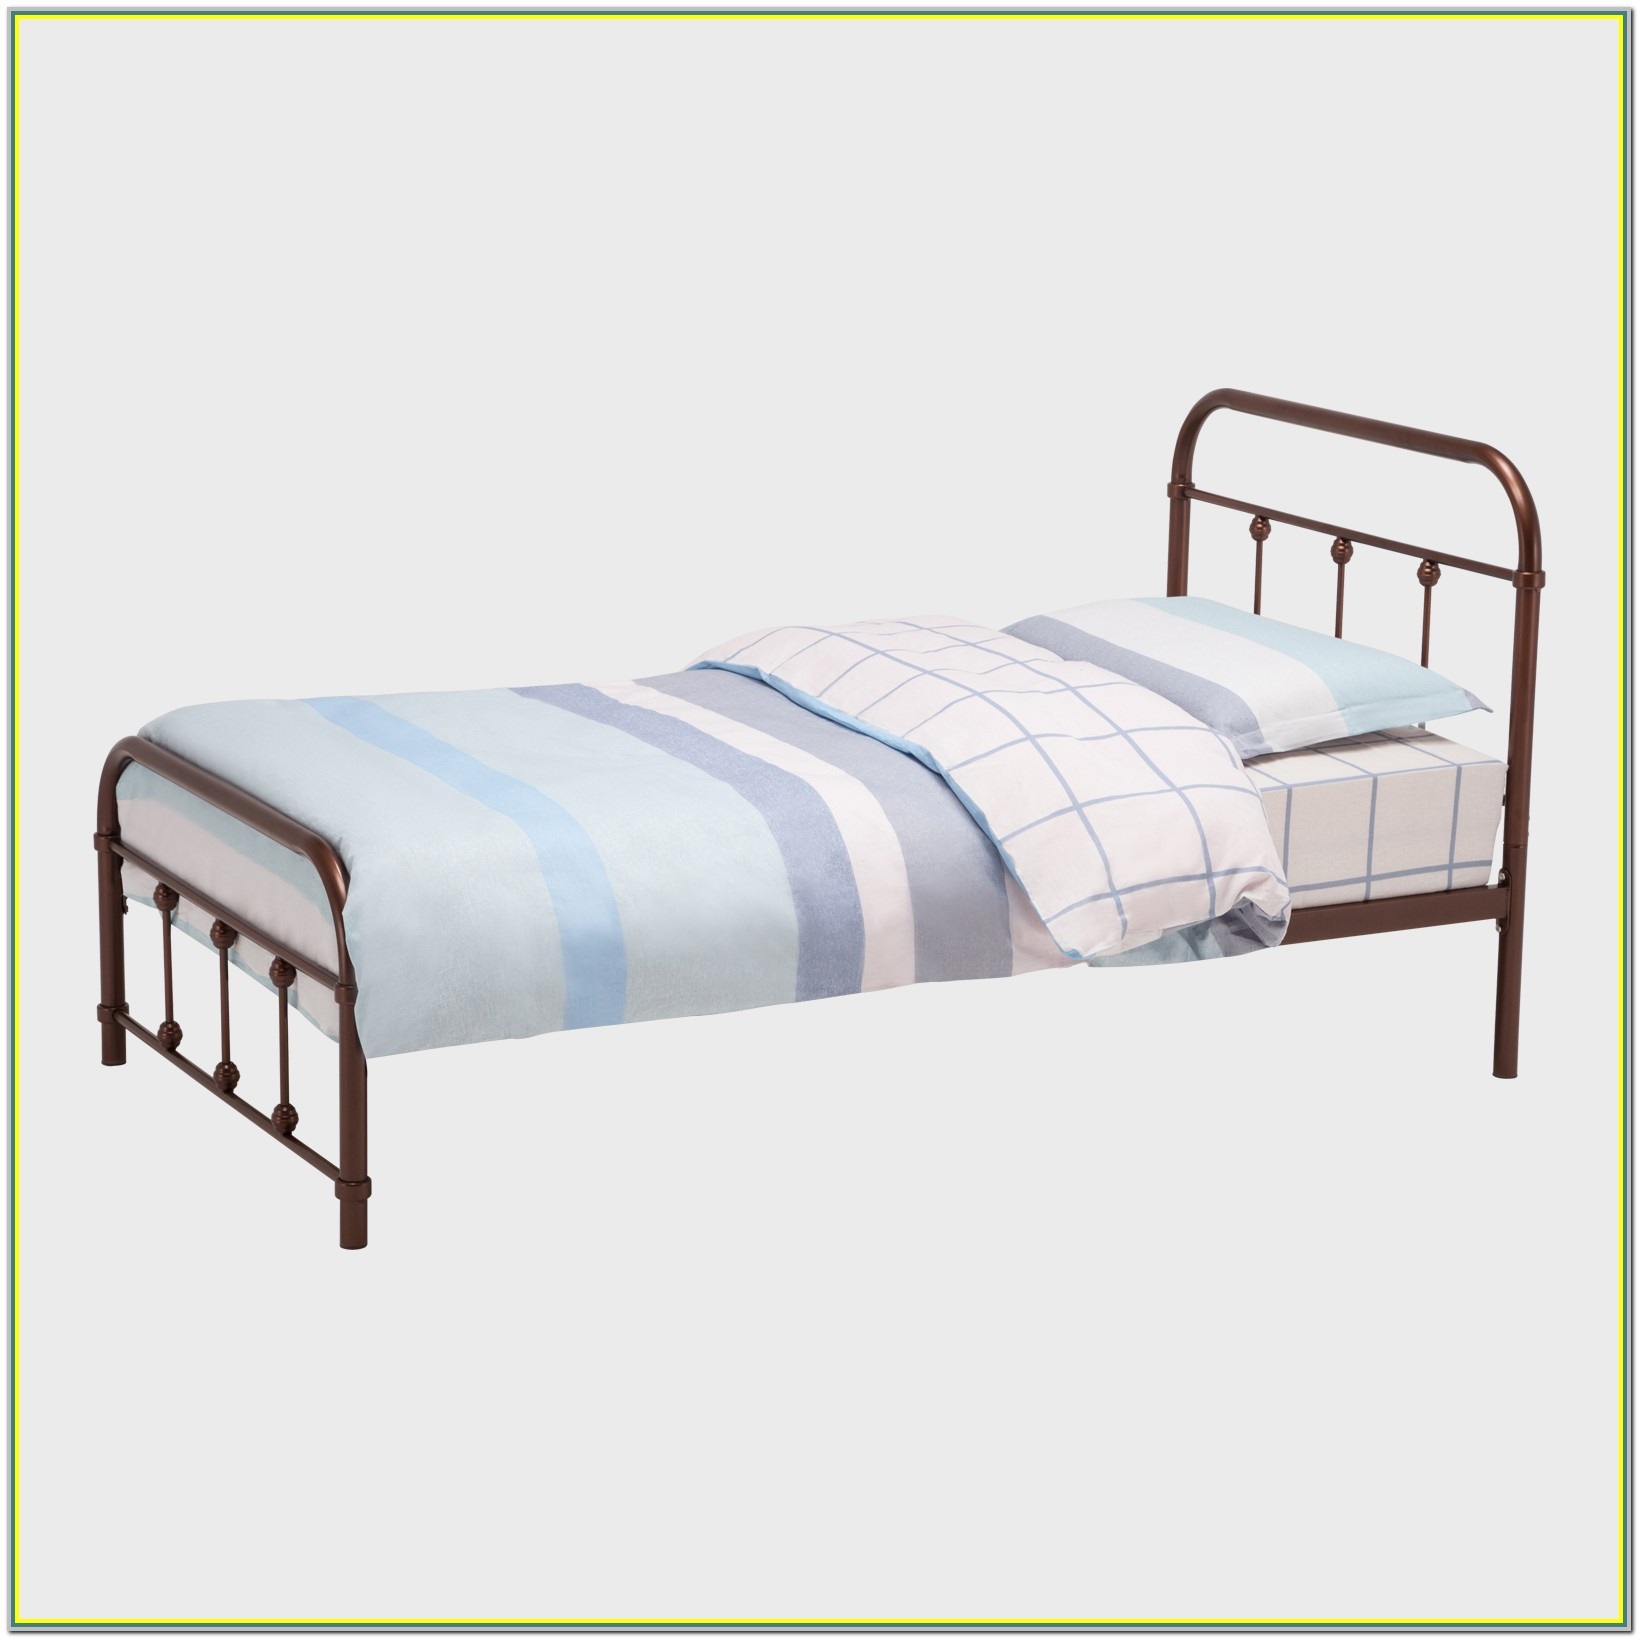 Twin Mattress For Bunk Bed Dimensions